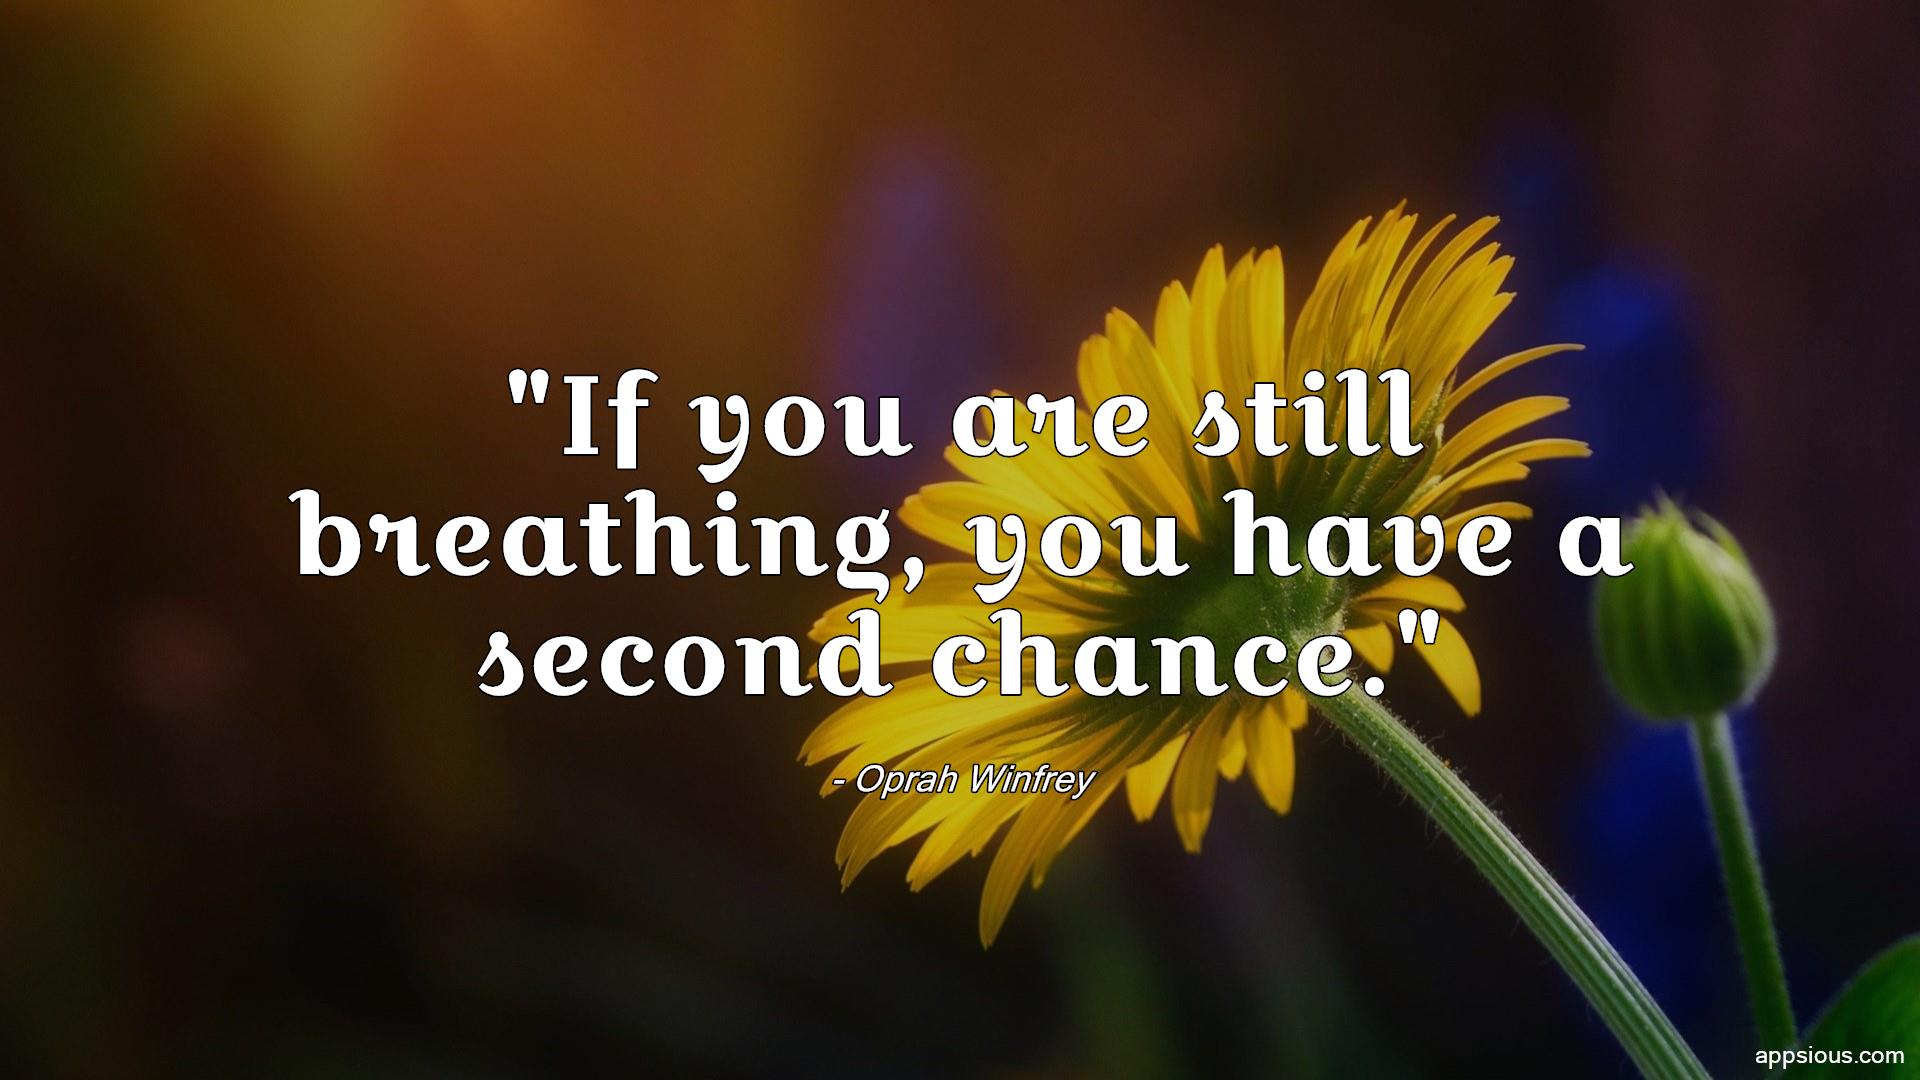 If you are still breathing, you have a second chance.